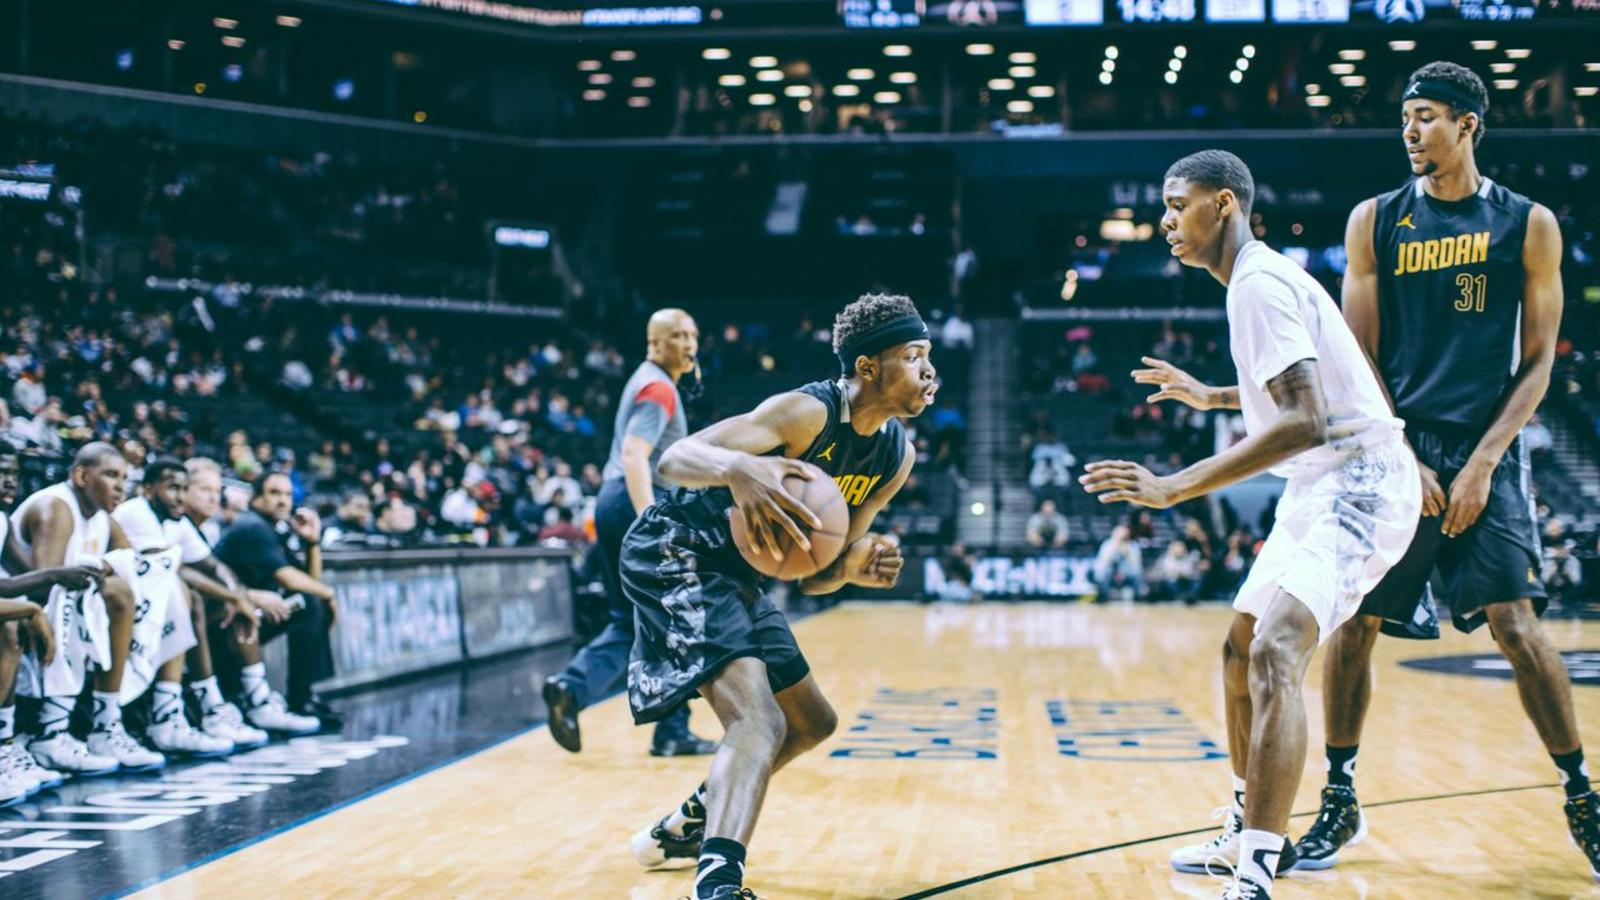 69d6f40f27f Elite High School Basketball Players Take Flight at Jordan Brand ...